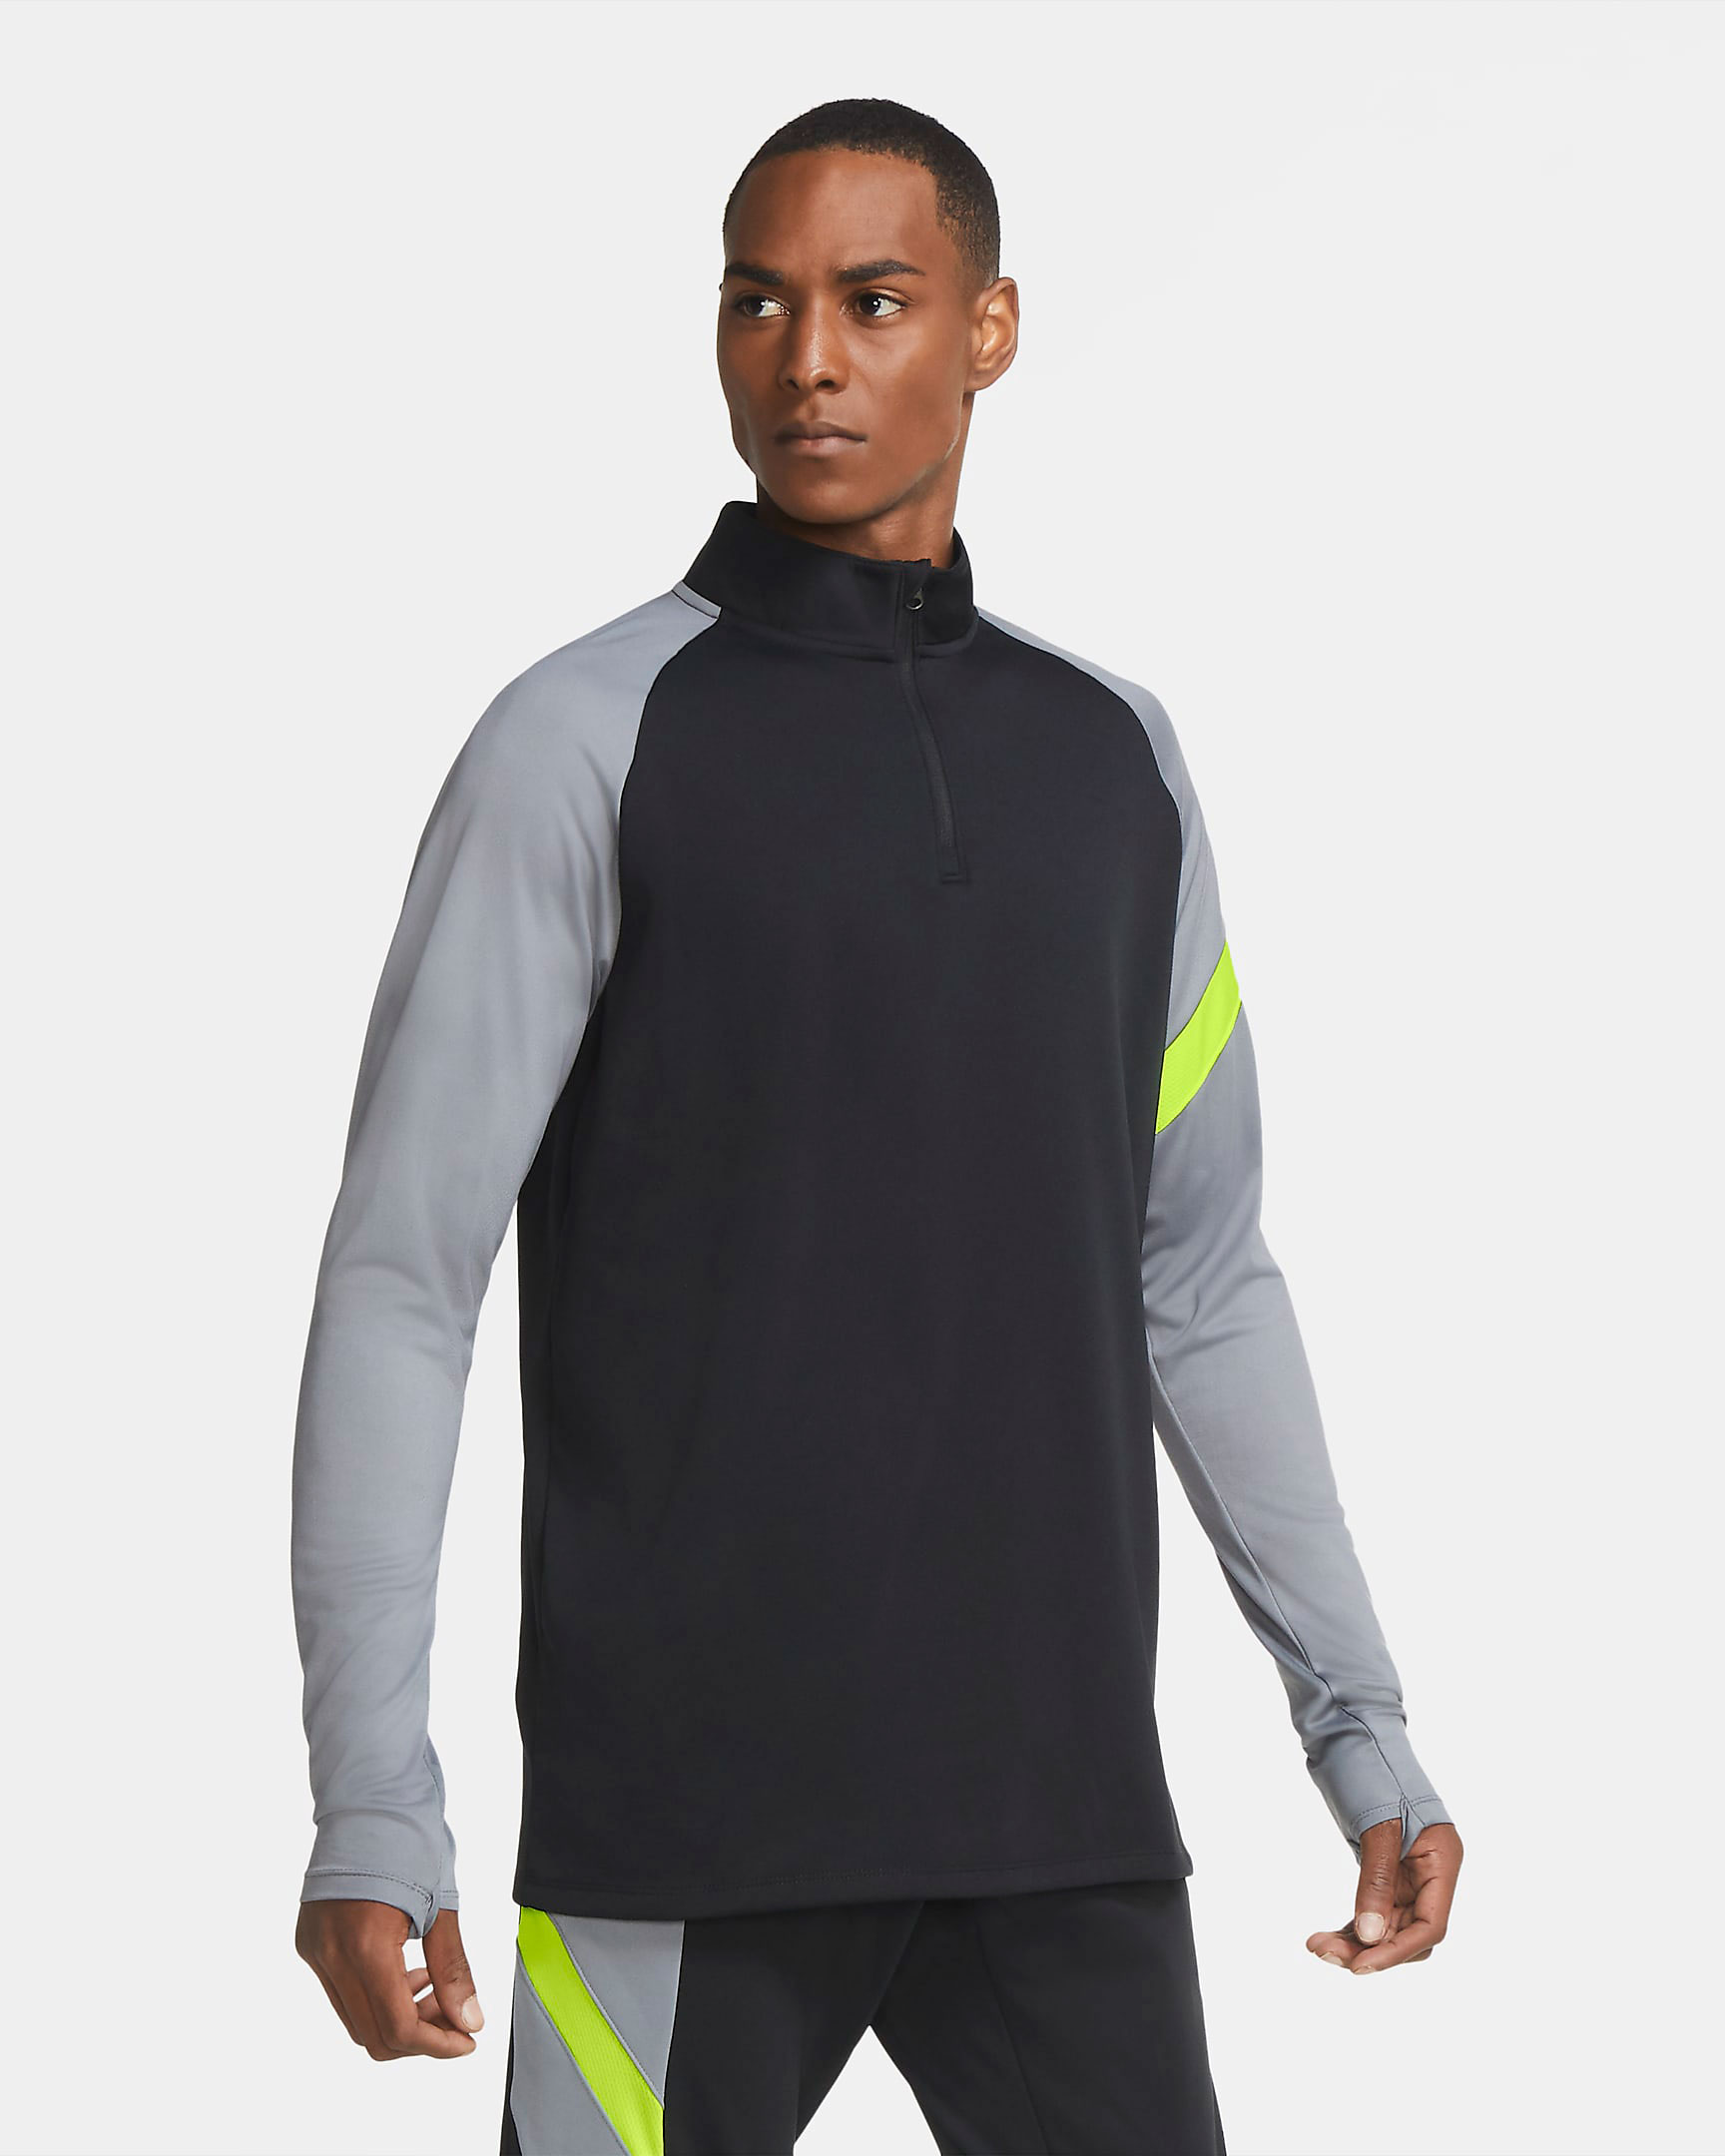 nike-air-max-95-neon-long-sleeve-top-1